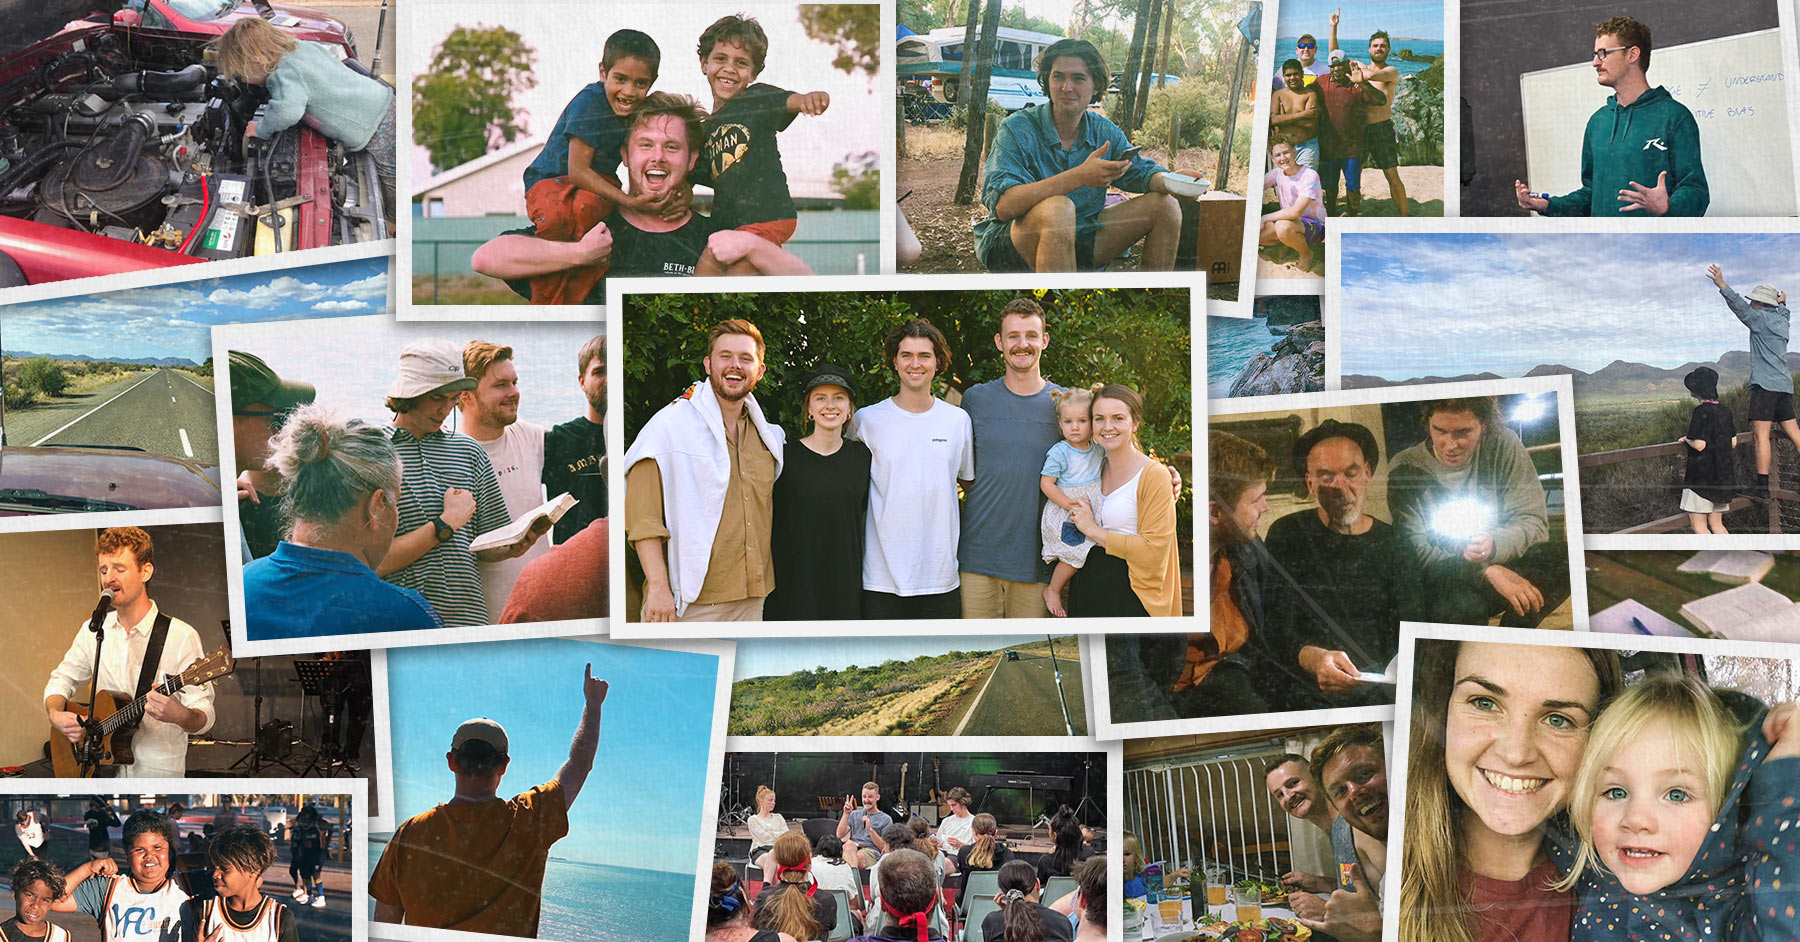 Mobile Mission Team – Young missionaries sharing life and faith on the road